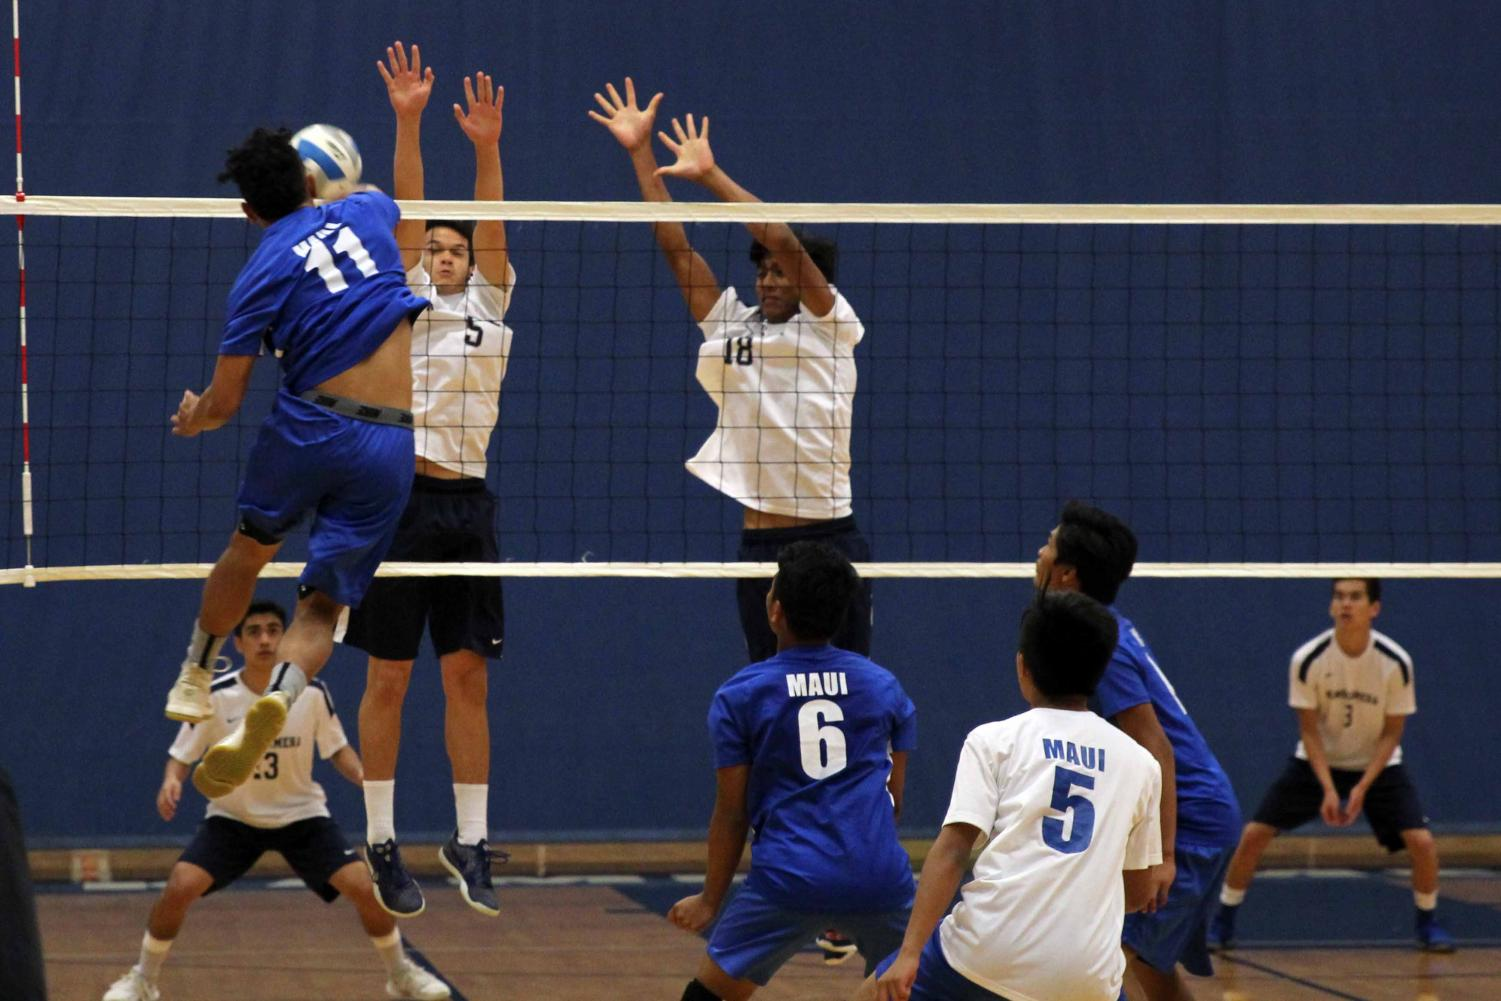 Sophomore+Ethan+James+and+senior+Rafael+Adolpho+get+ready+to+block+the+ball+from+their+opponent.+